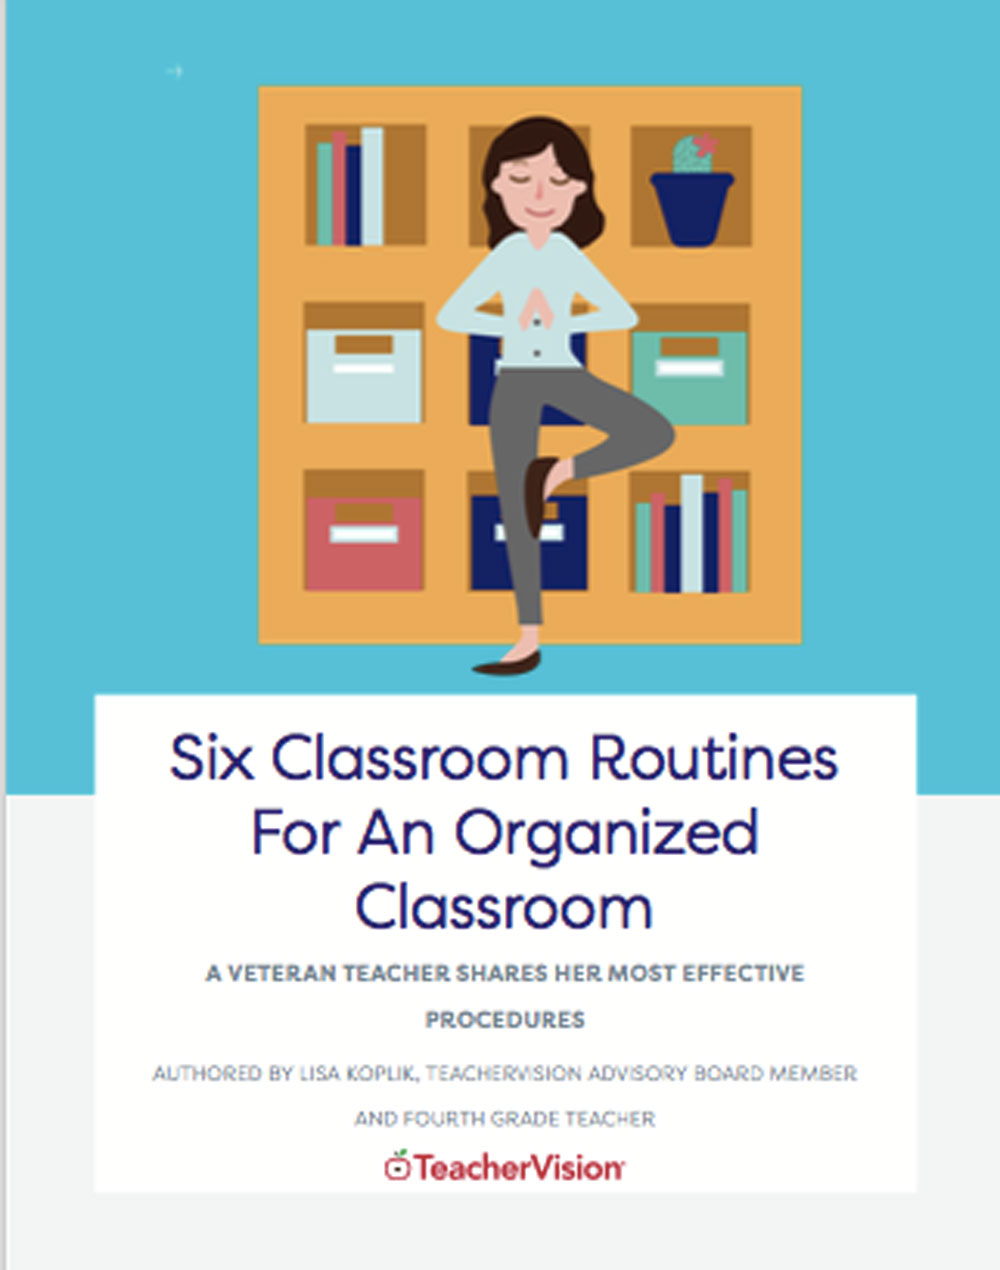 An e-book with six classroom routines for an organized classroom